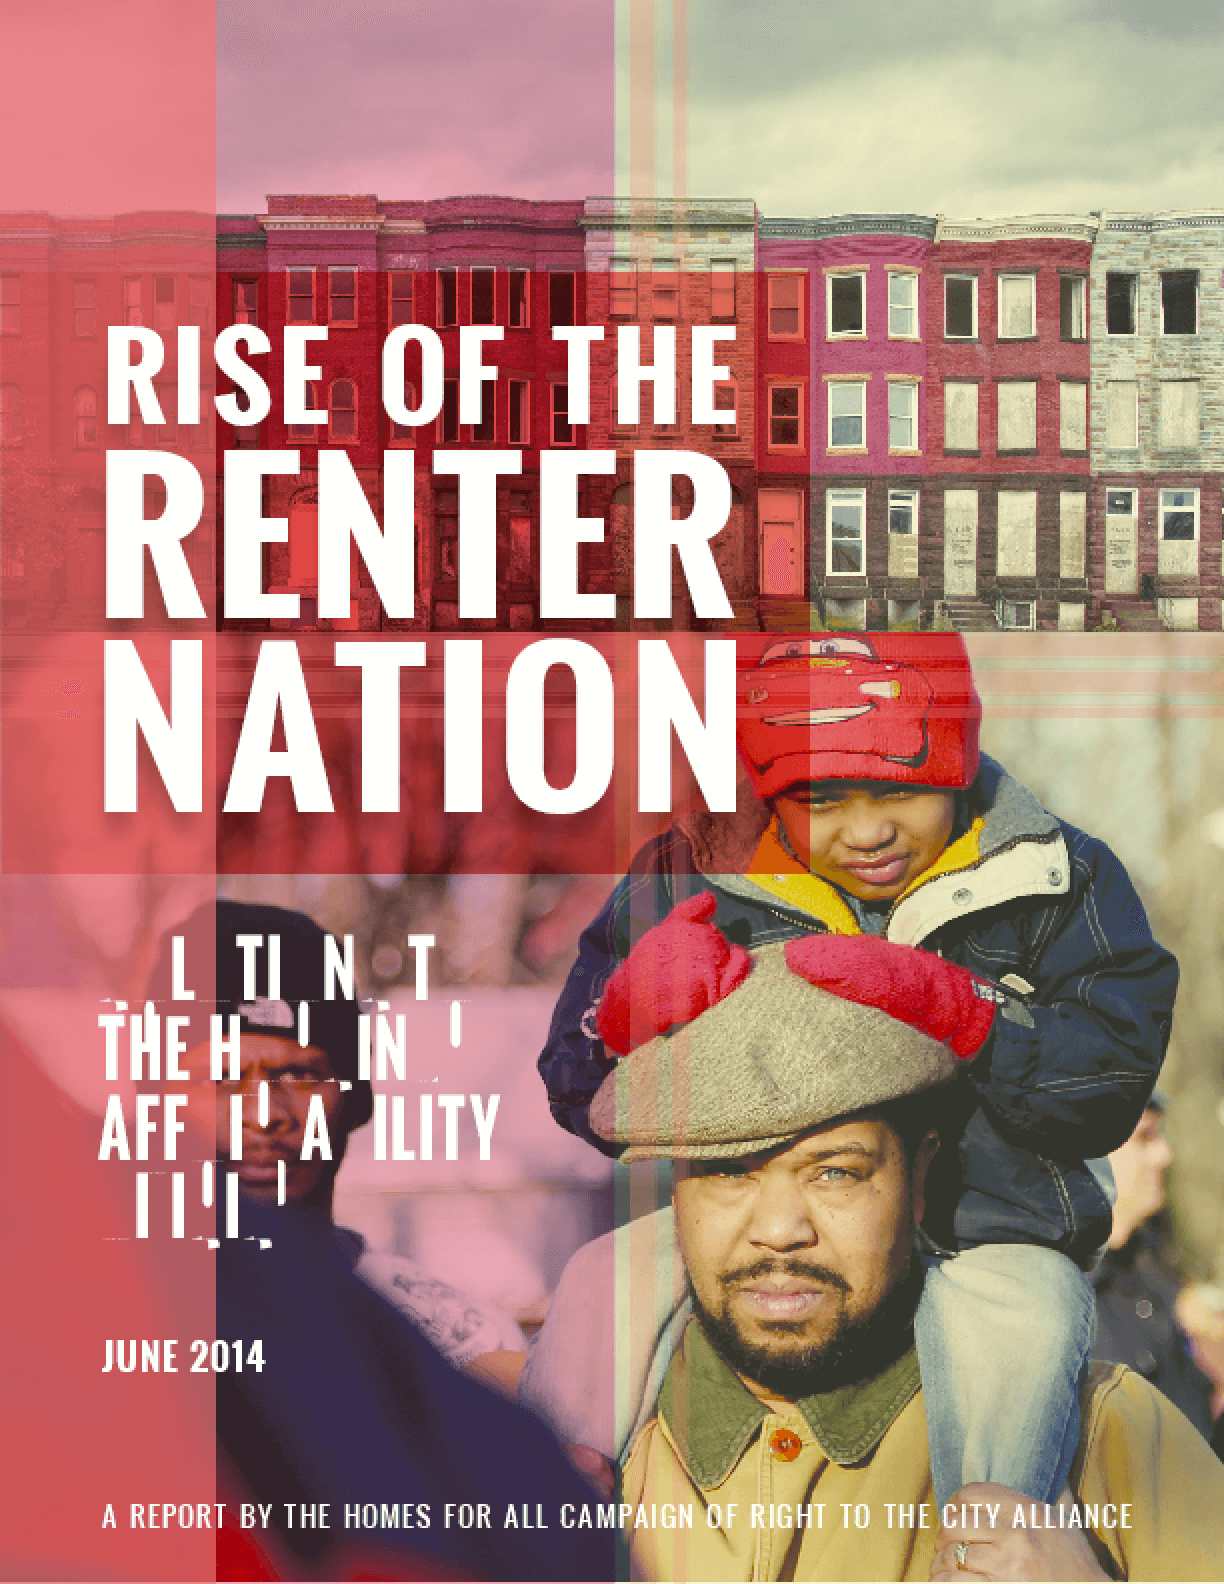 Rise of the Renter Nation: Solutions to the Housing Affordability Crisis